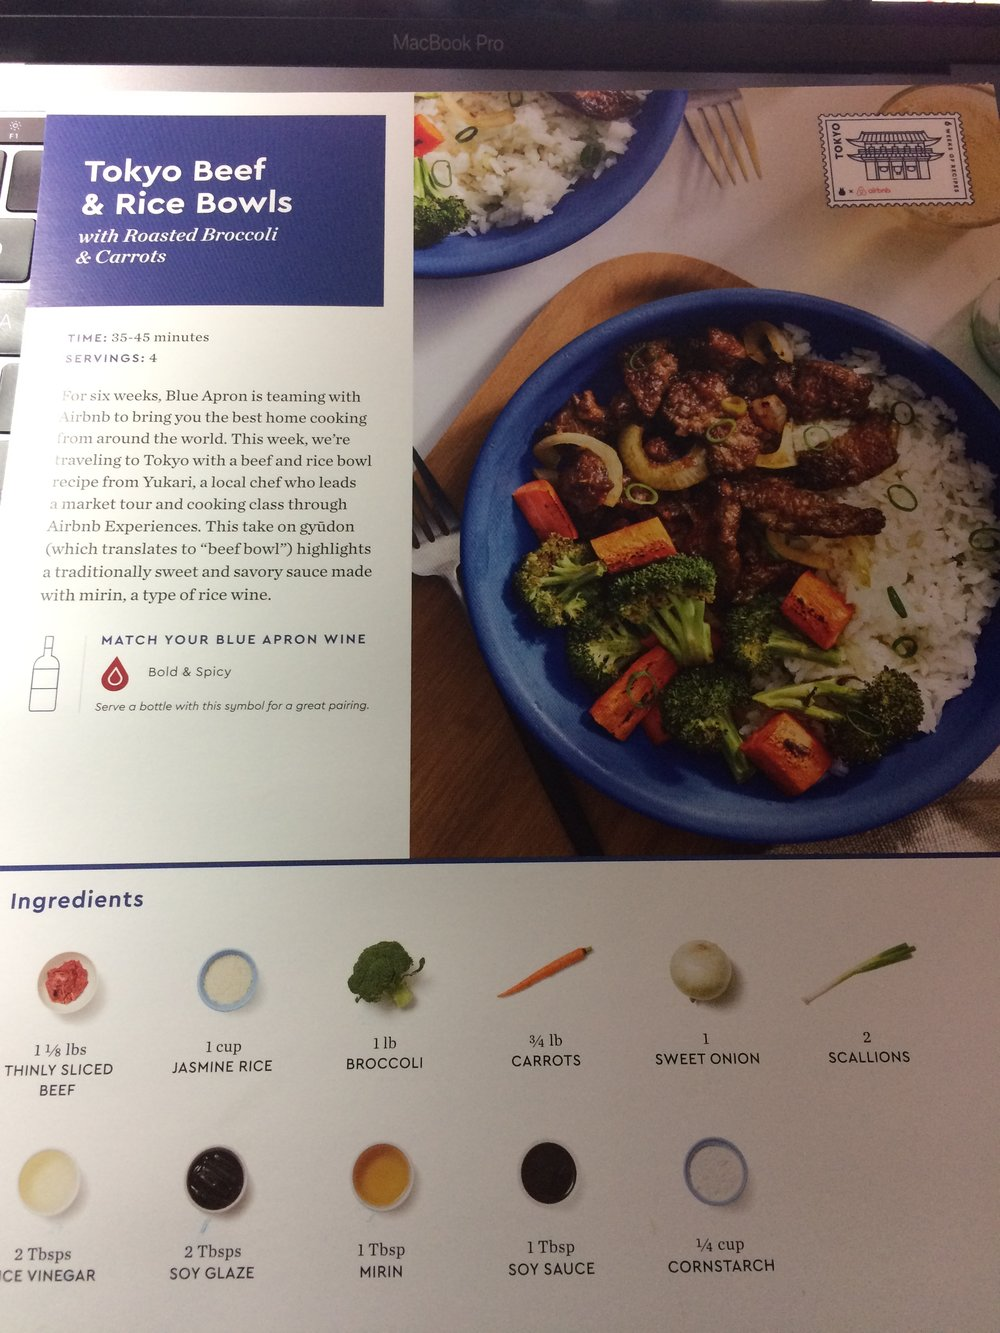 - This recipe claims that it takes 35-45 minutes to make. That is accurate - as long as you don't take into account any of the pre-cooking prep. My overall time for this recipe was about an hour and a half, but to be fair - I'm a very slow chopper.